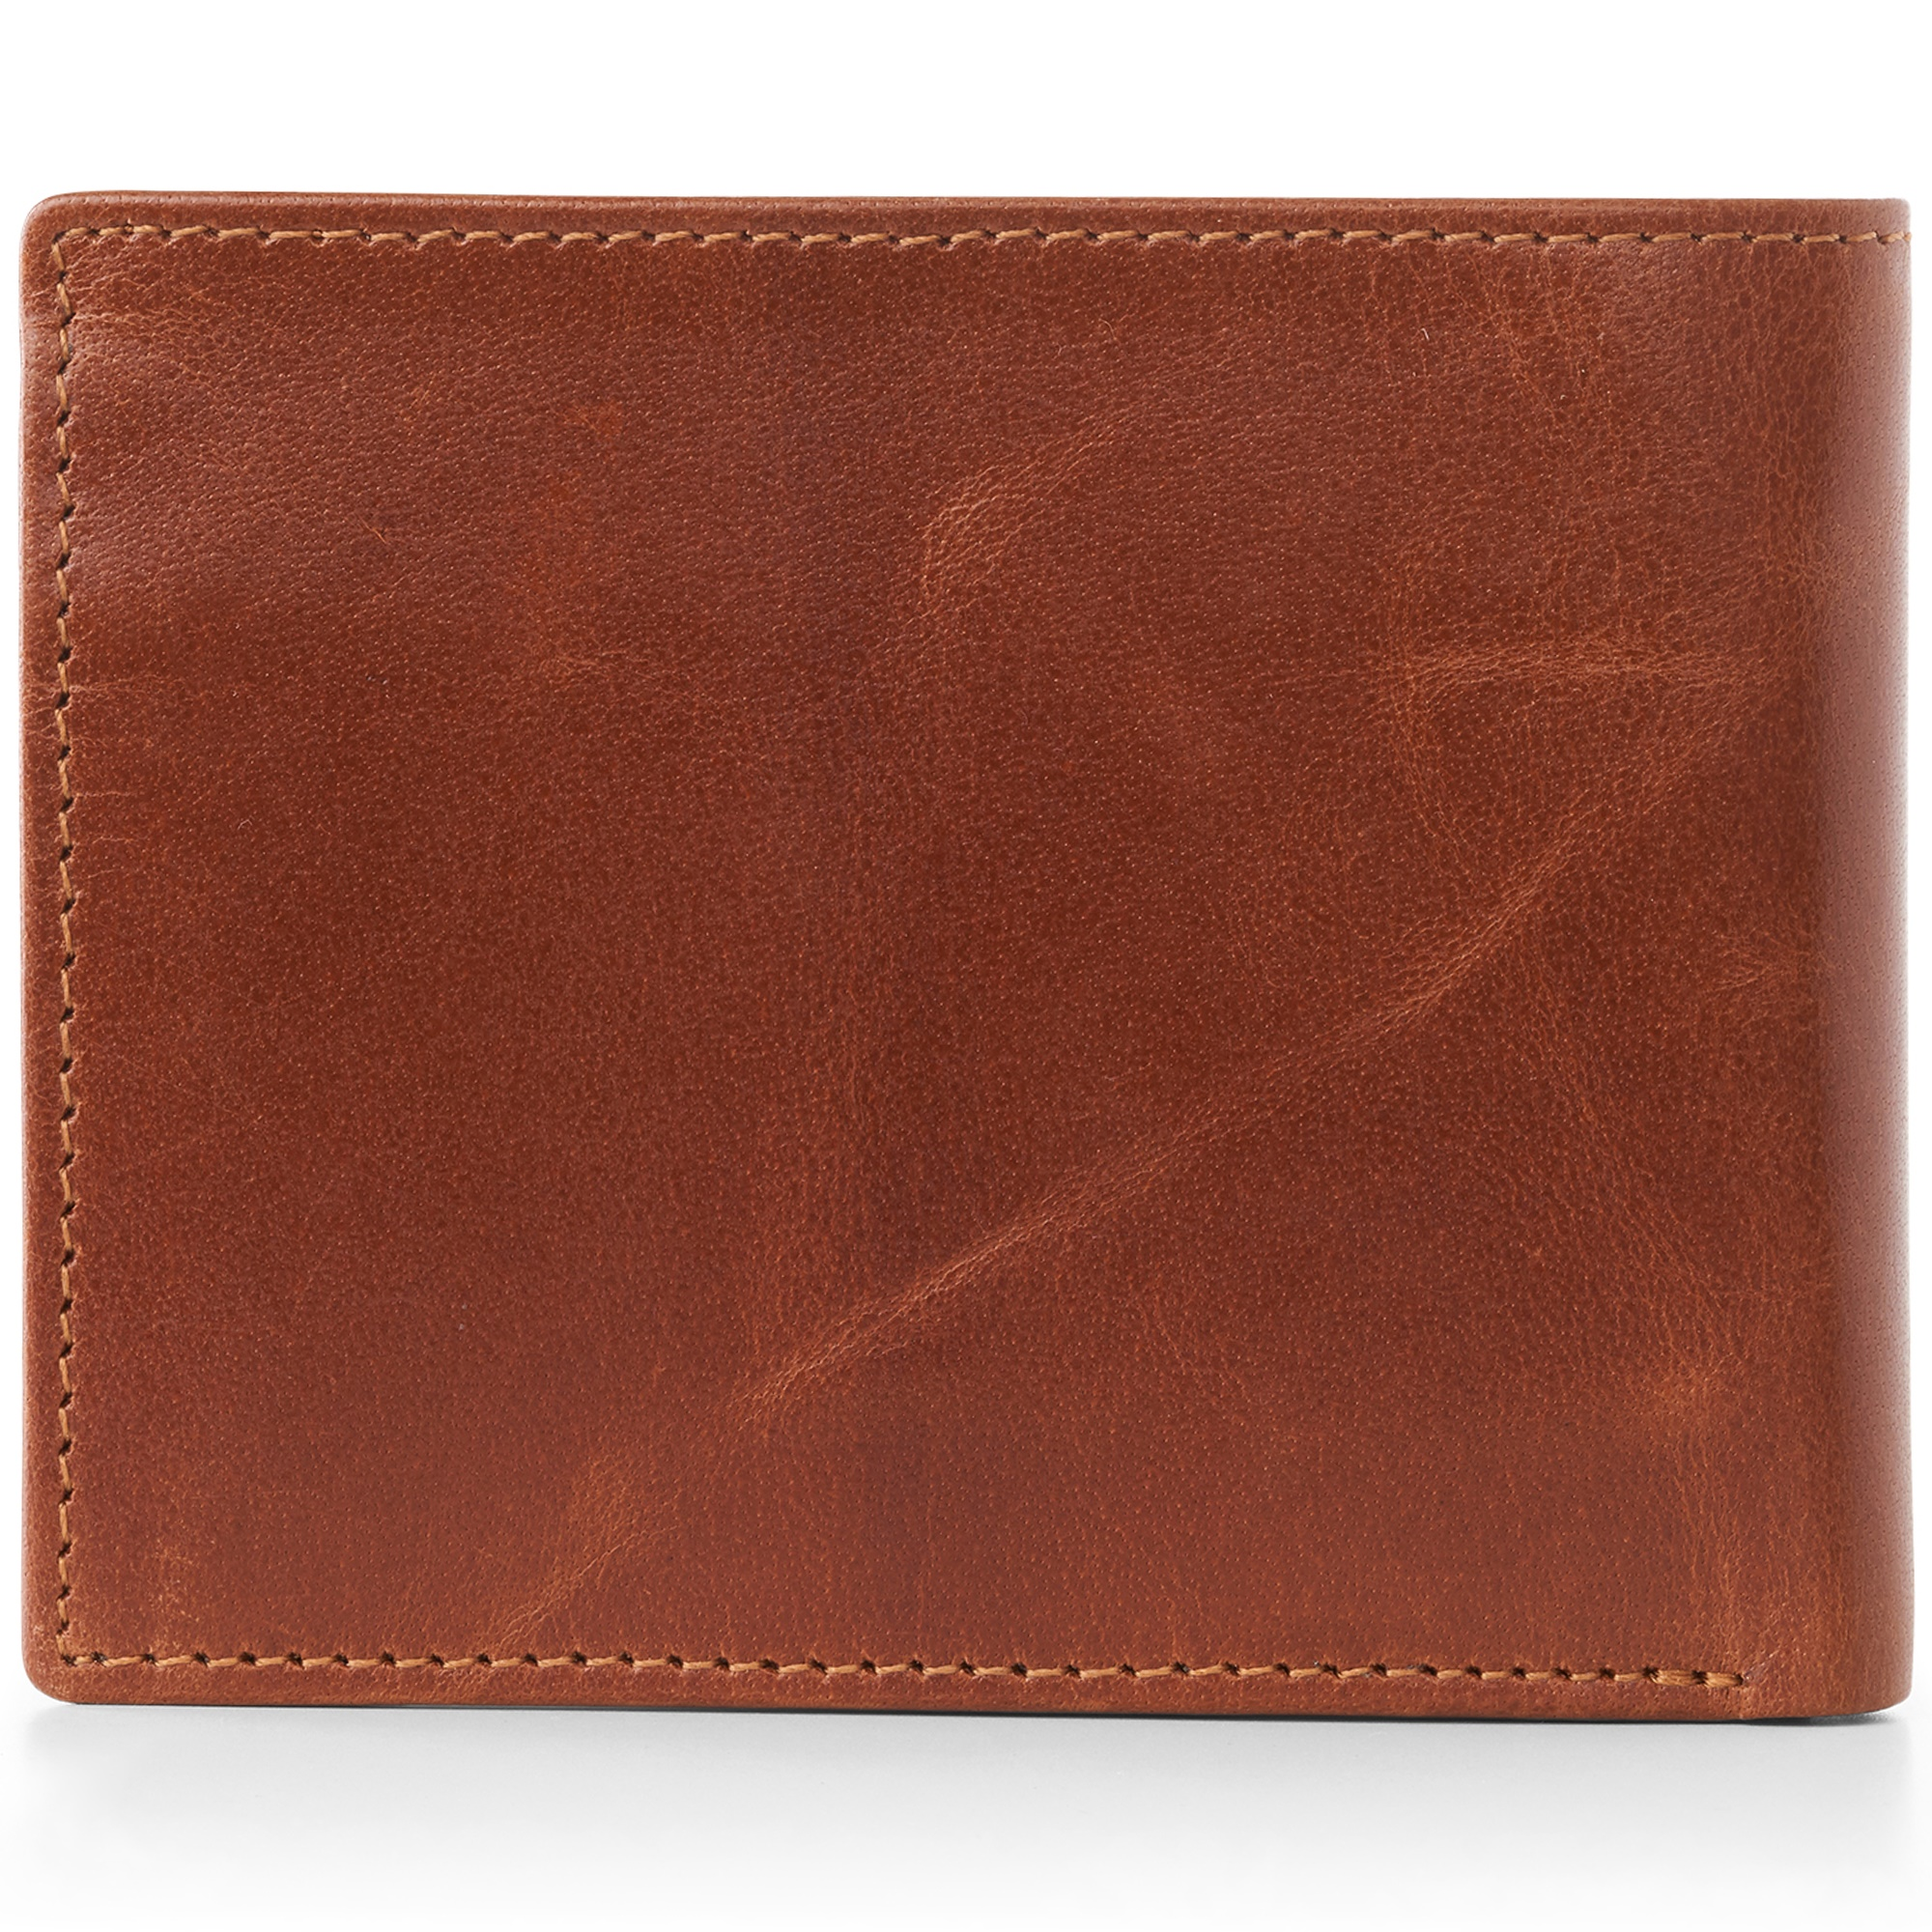 miniature 28 - Alpine-Swiss-RFID-Mens-Wallet-Deluxe-Capacity-Passcase-Bifold-Two-Bill-Sections